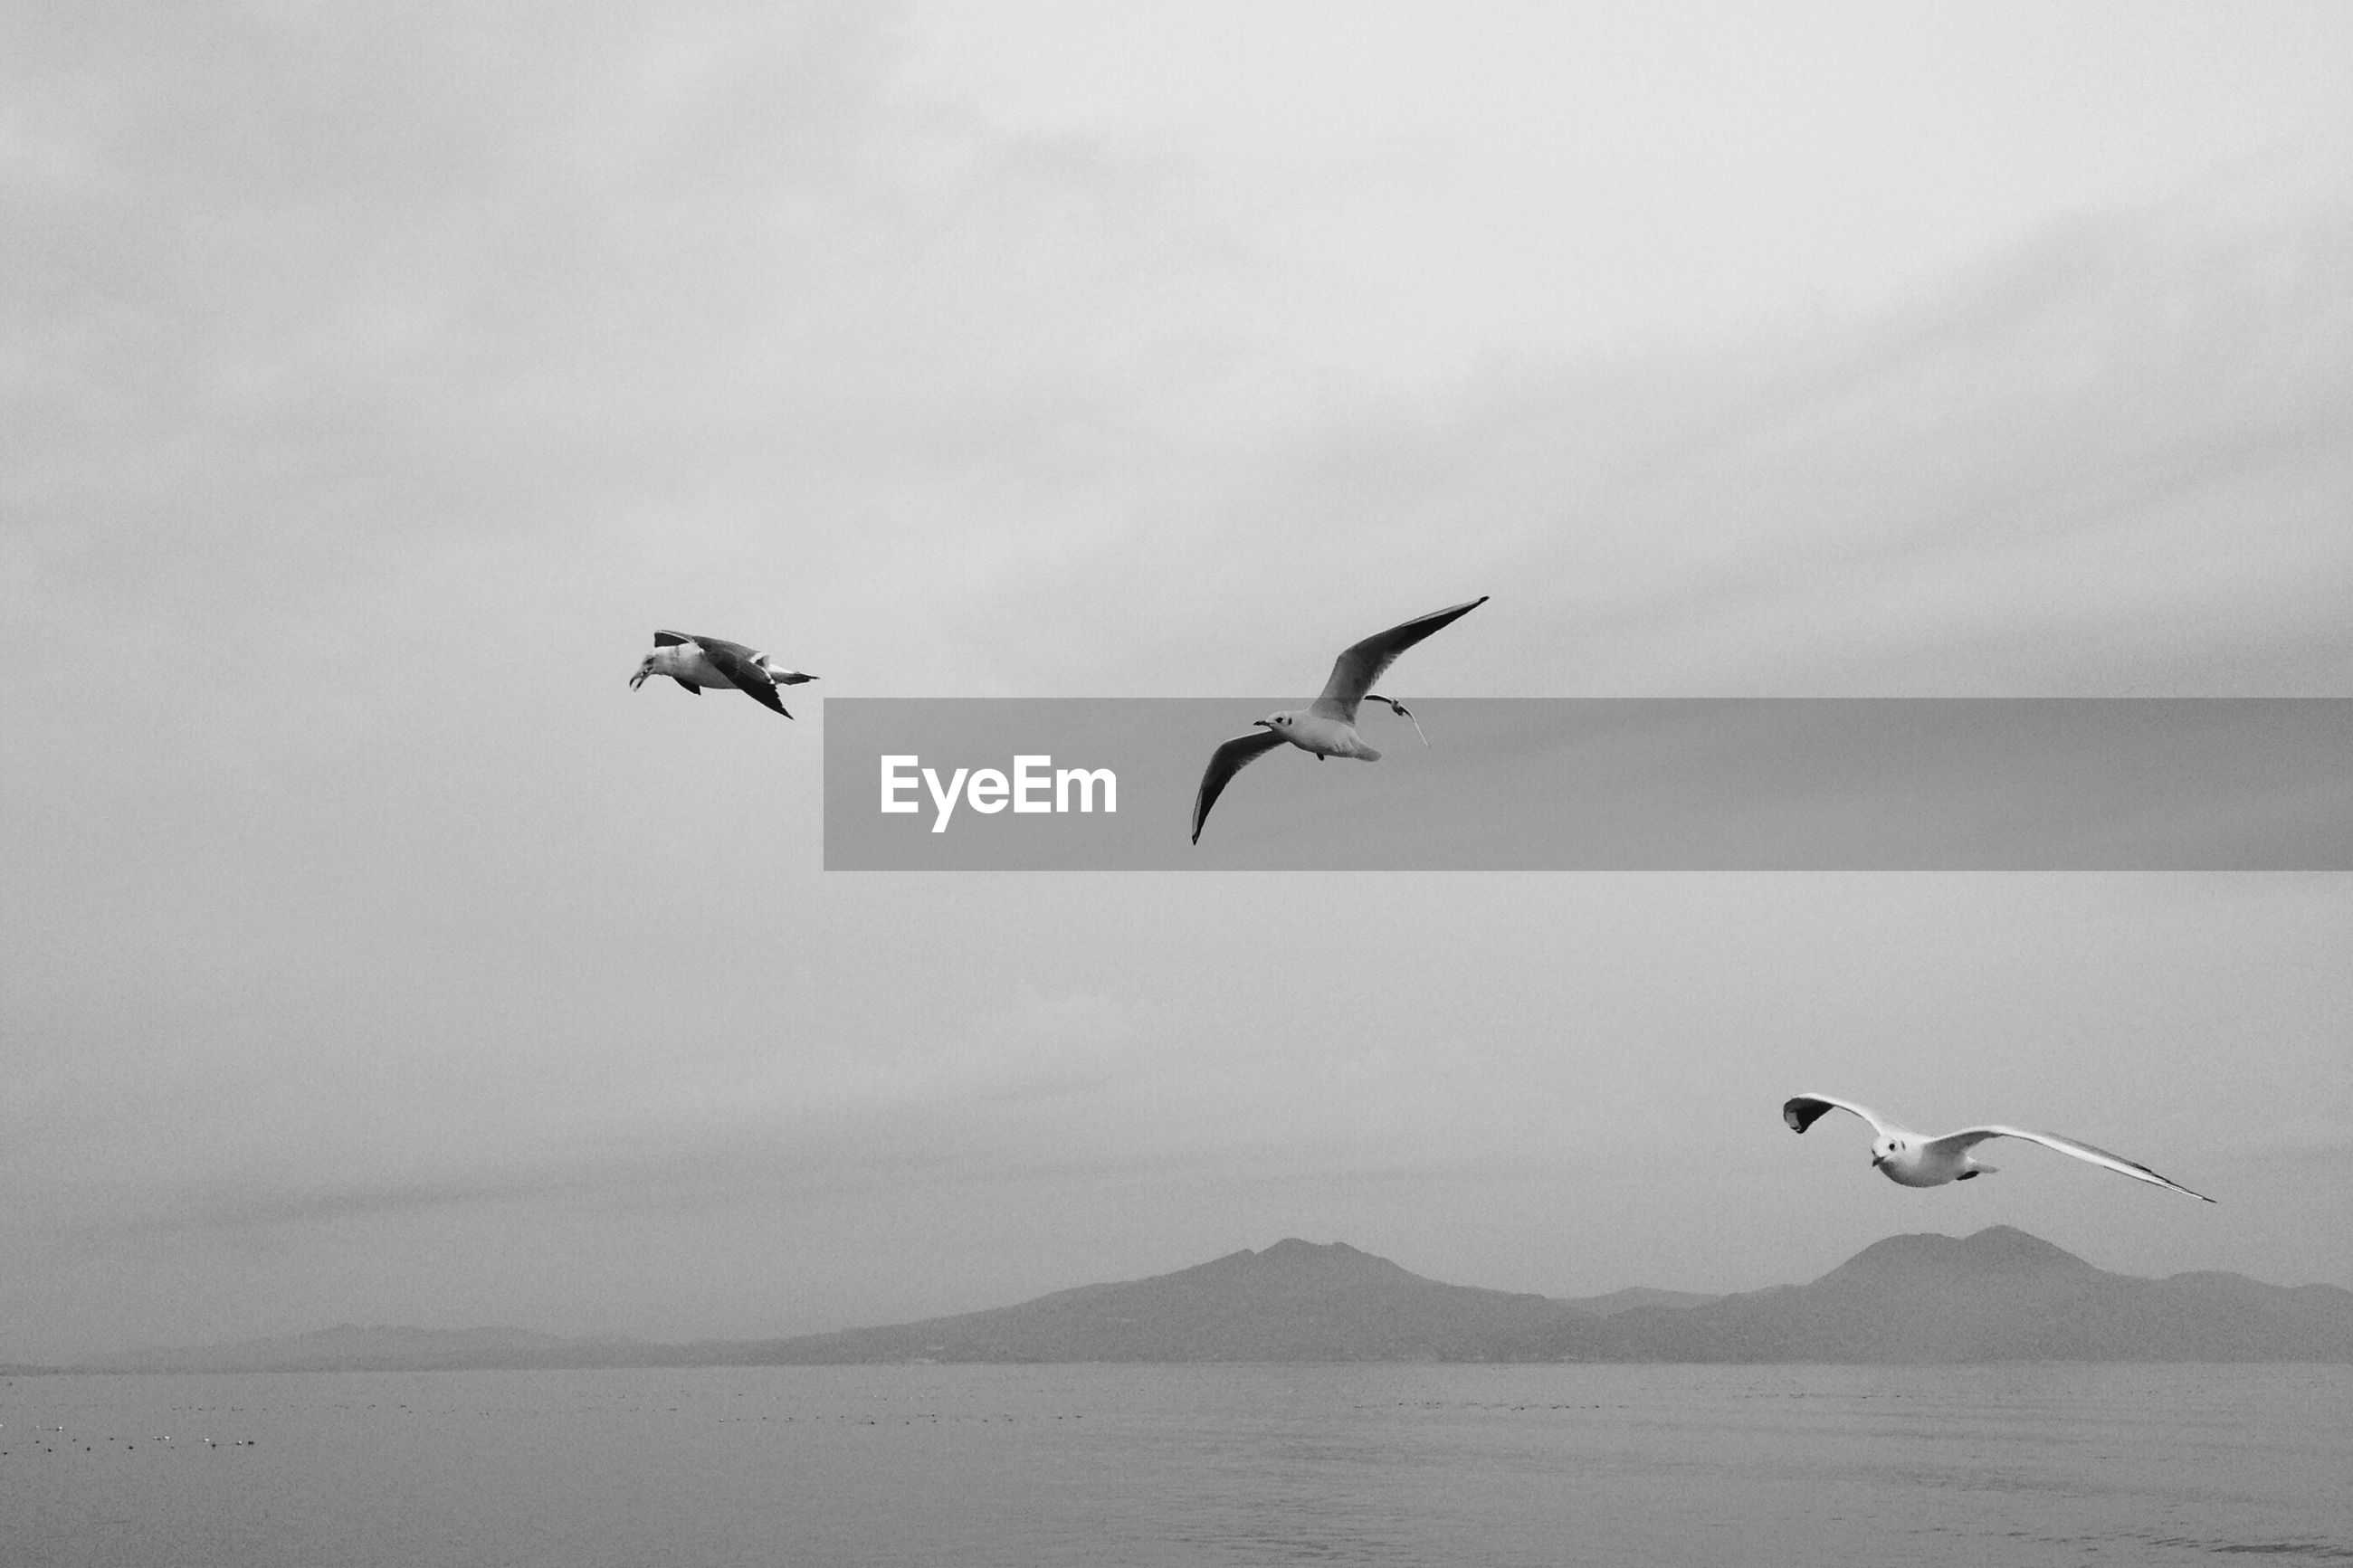 LOW ANGLE VIEW OF BIRDS FLYING OVER WATER AGAINST SKY